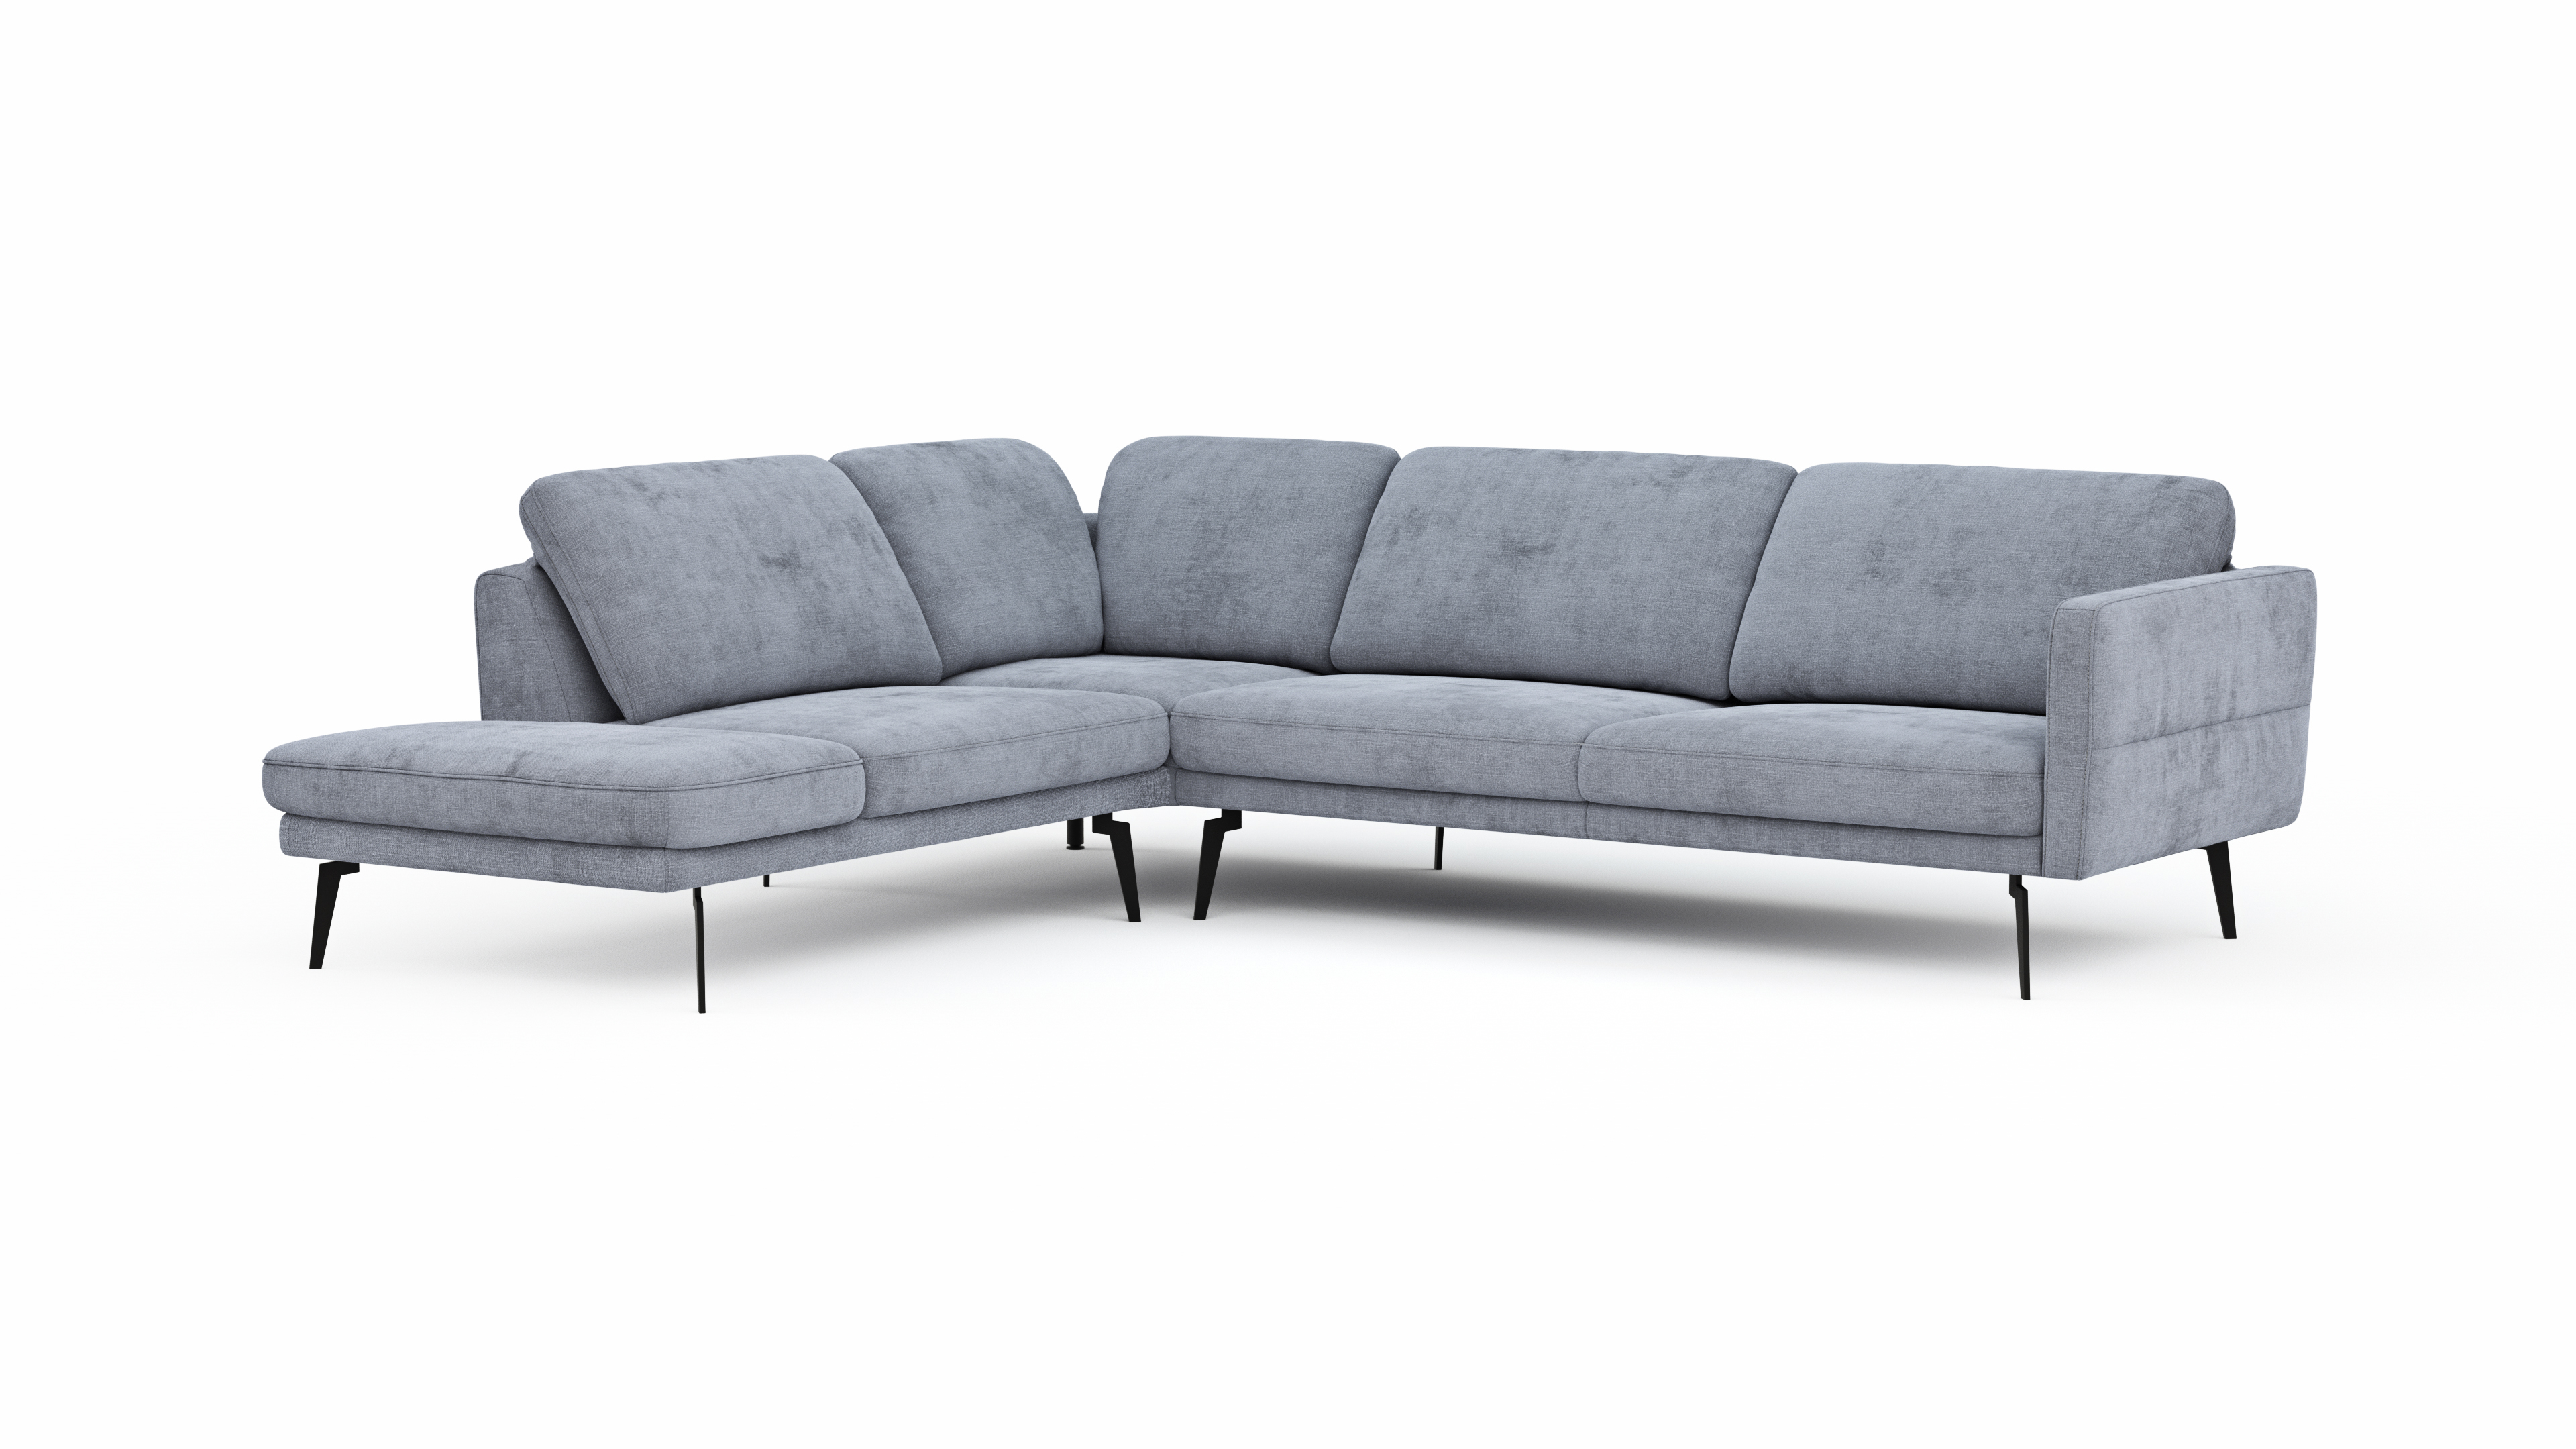 Global Select Ecksofa Estrela freisteller 2 104247 | Homepoet